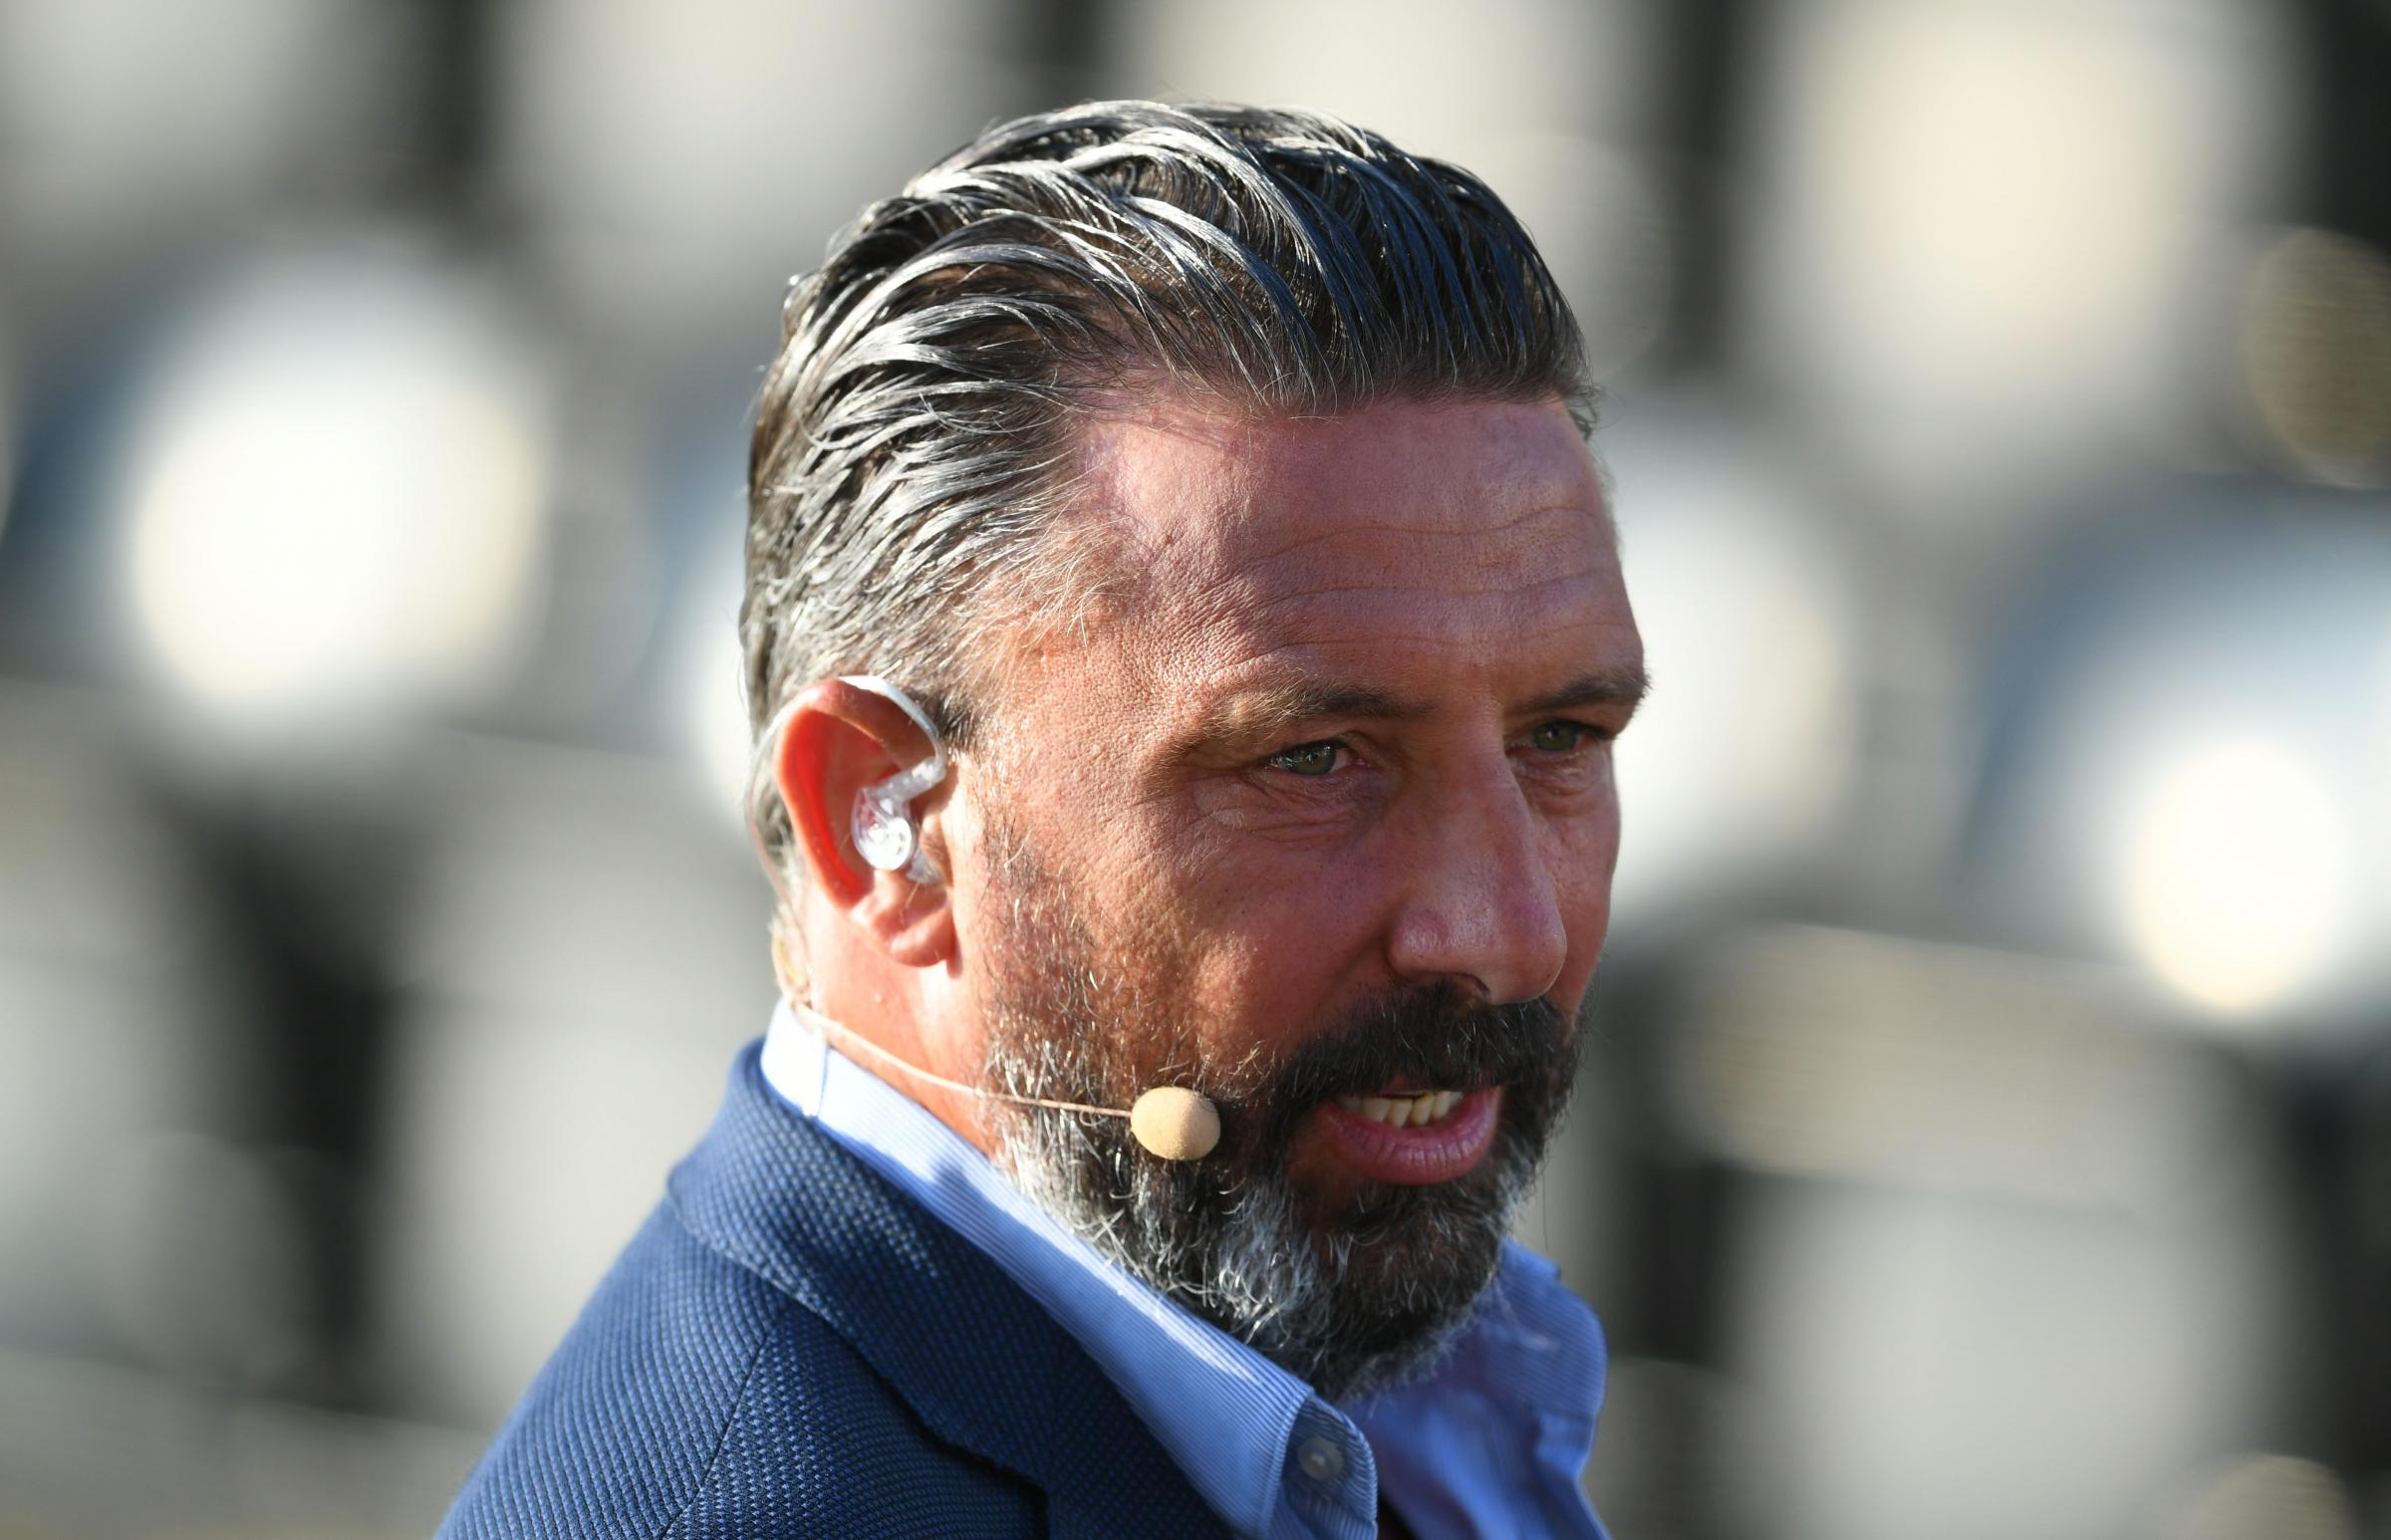 Derek McInnes: The financial benefits of Champions League qualification were huge for Rangers - Malmo loss is a blow